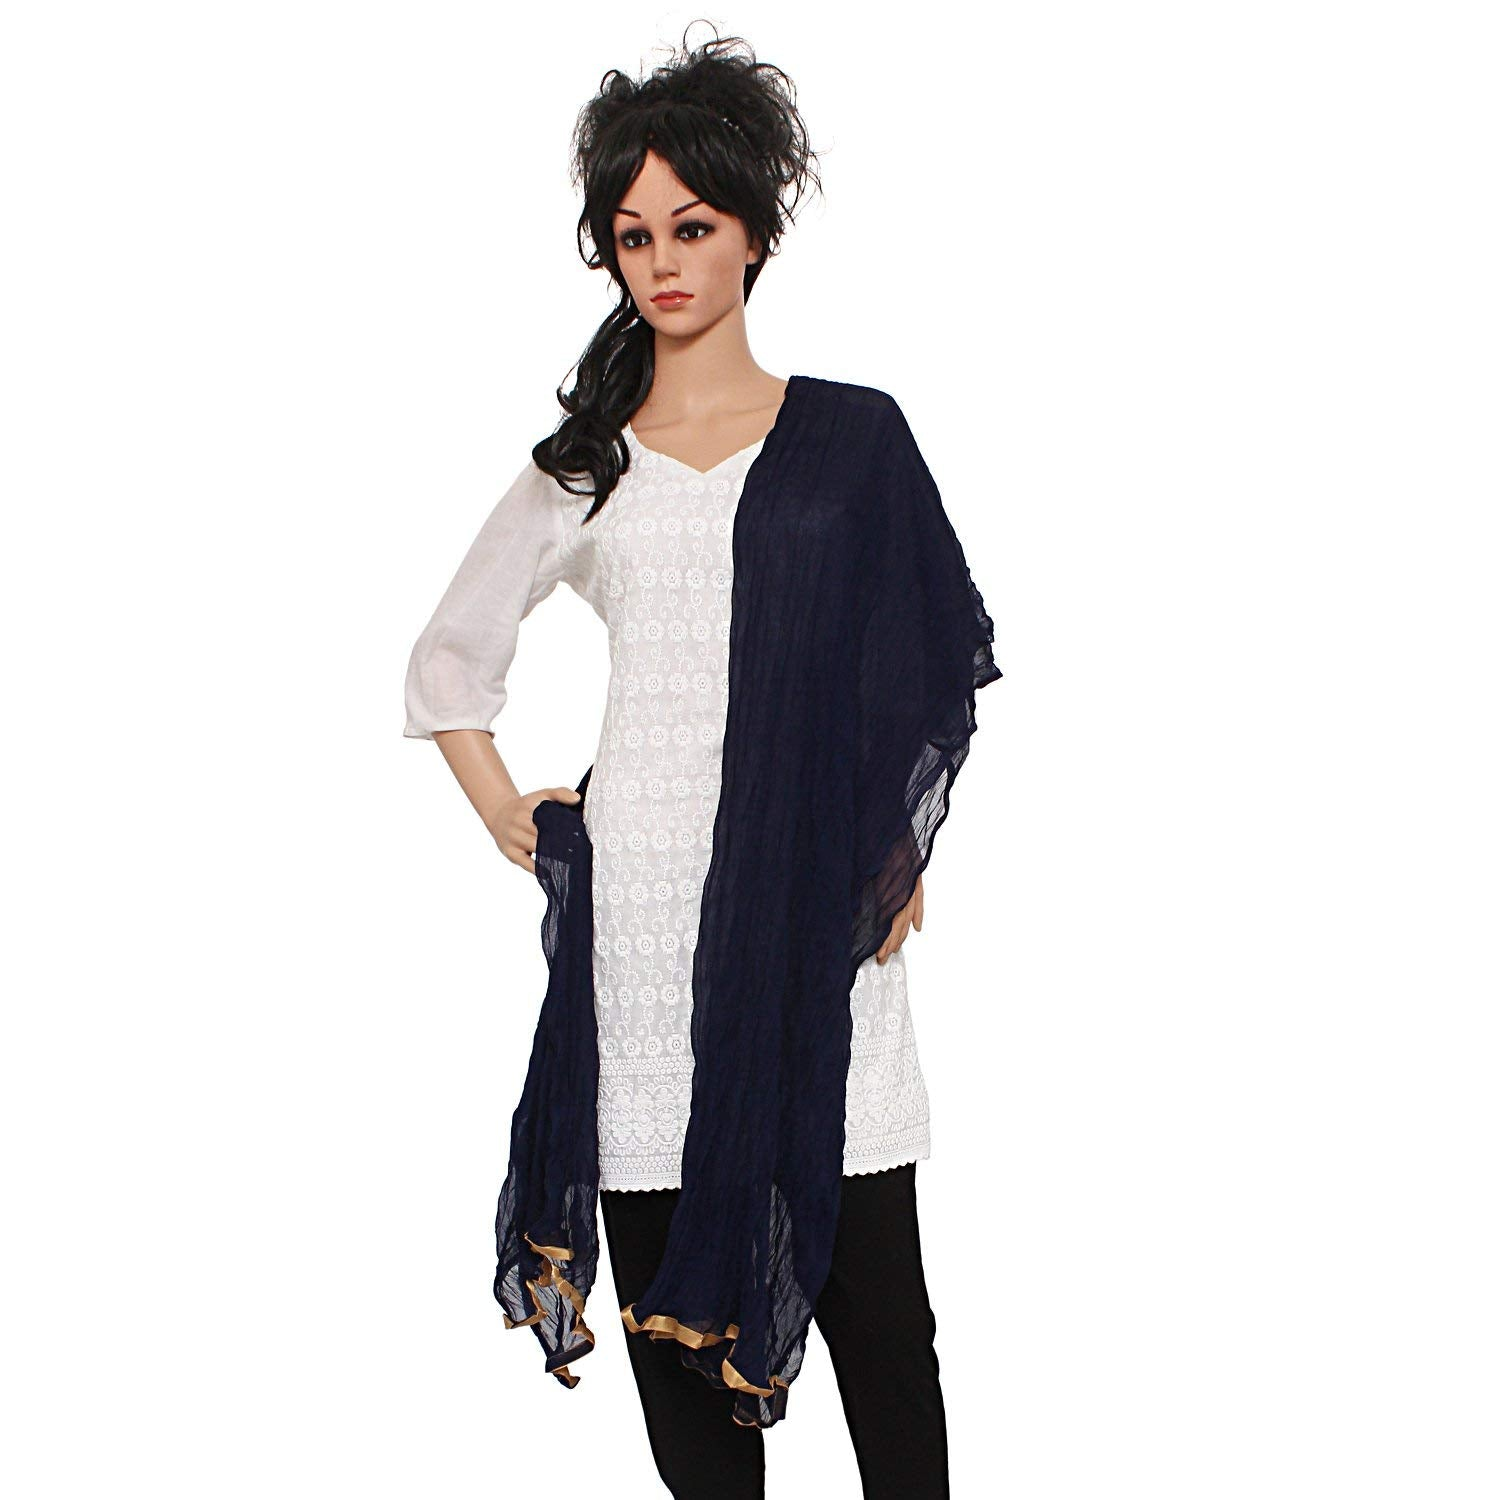 Solid / Plain Women's Dupatta With Golden Lace/Border (Dark Blue) - Bagaholics Gift